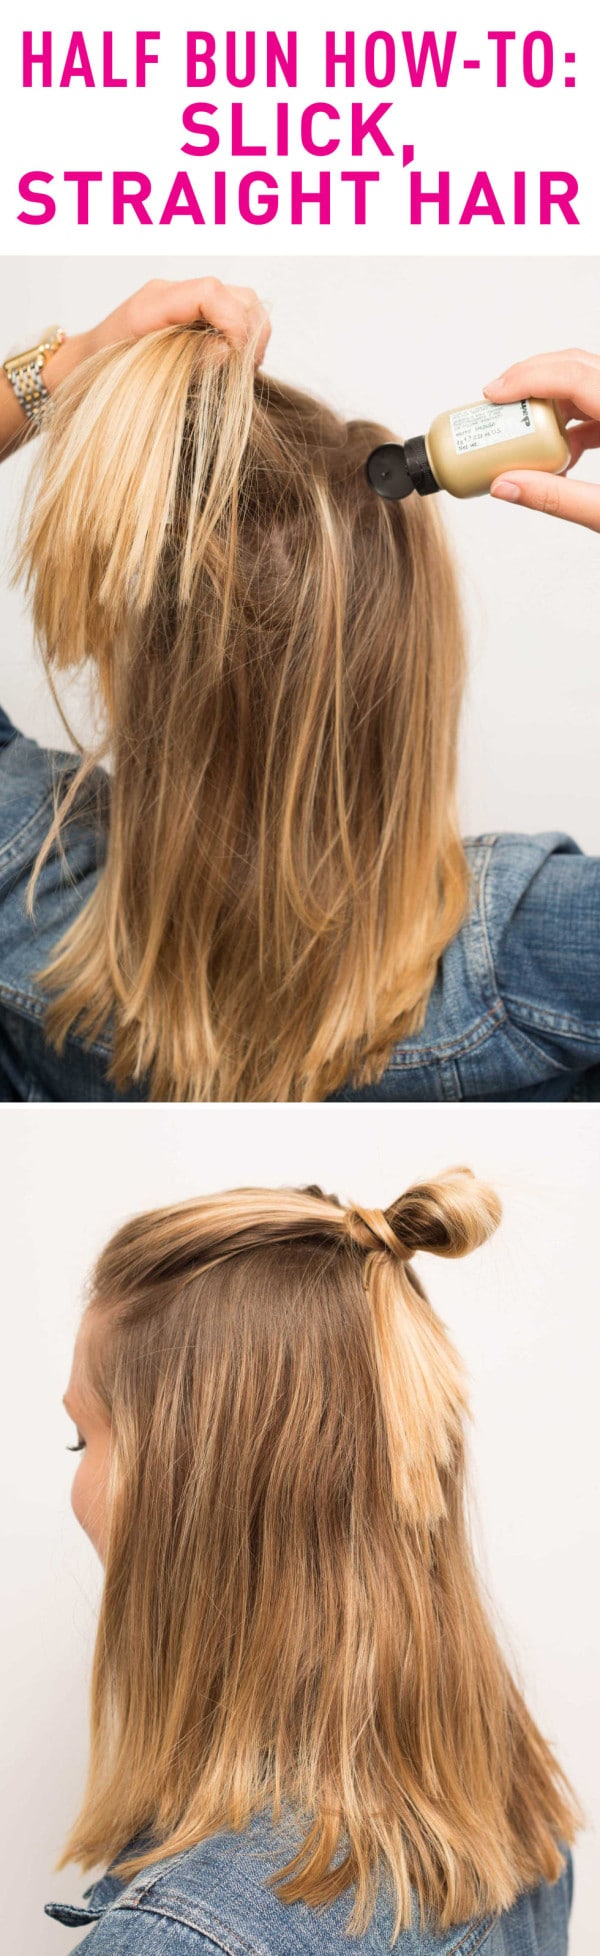 16 Cool Ways to Style Your Look With Half Bun Hairstyle